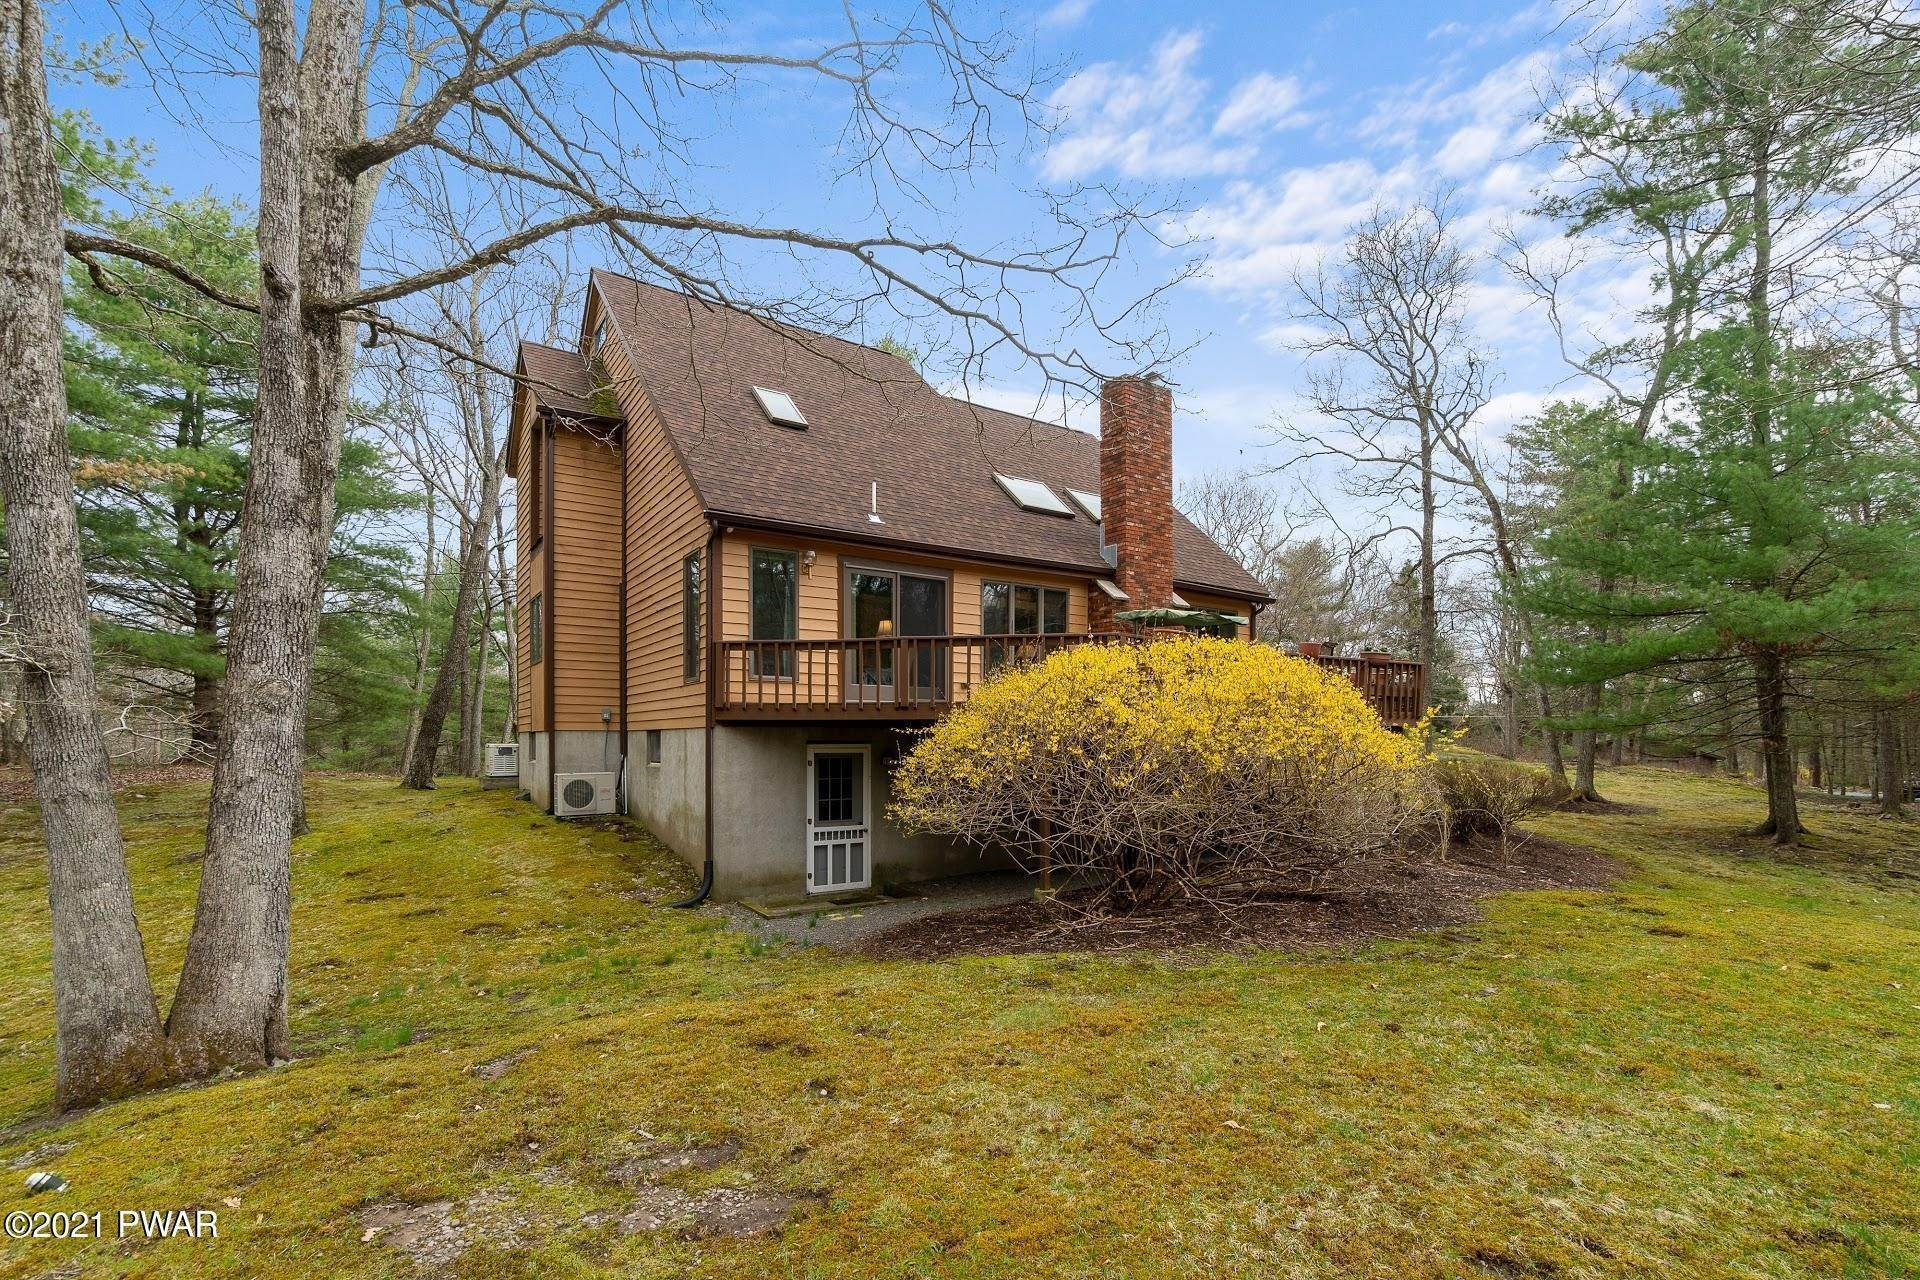 57. Single Family Homes for Sale at 103 Vesuvius Ln Milford, Pennsylvania 18337 United States